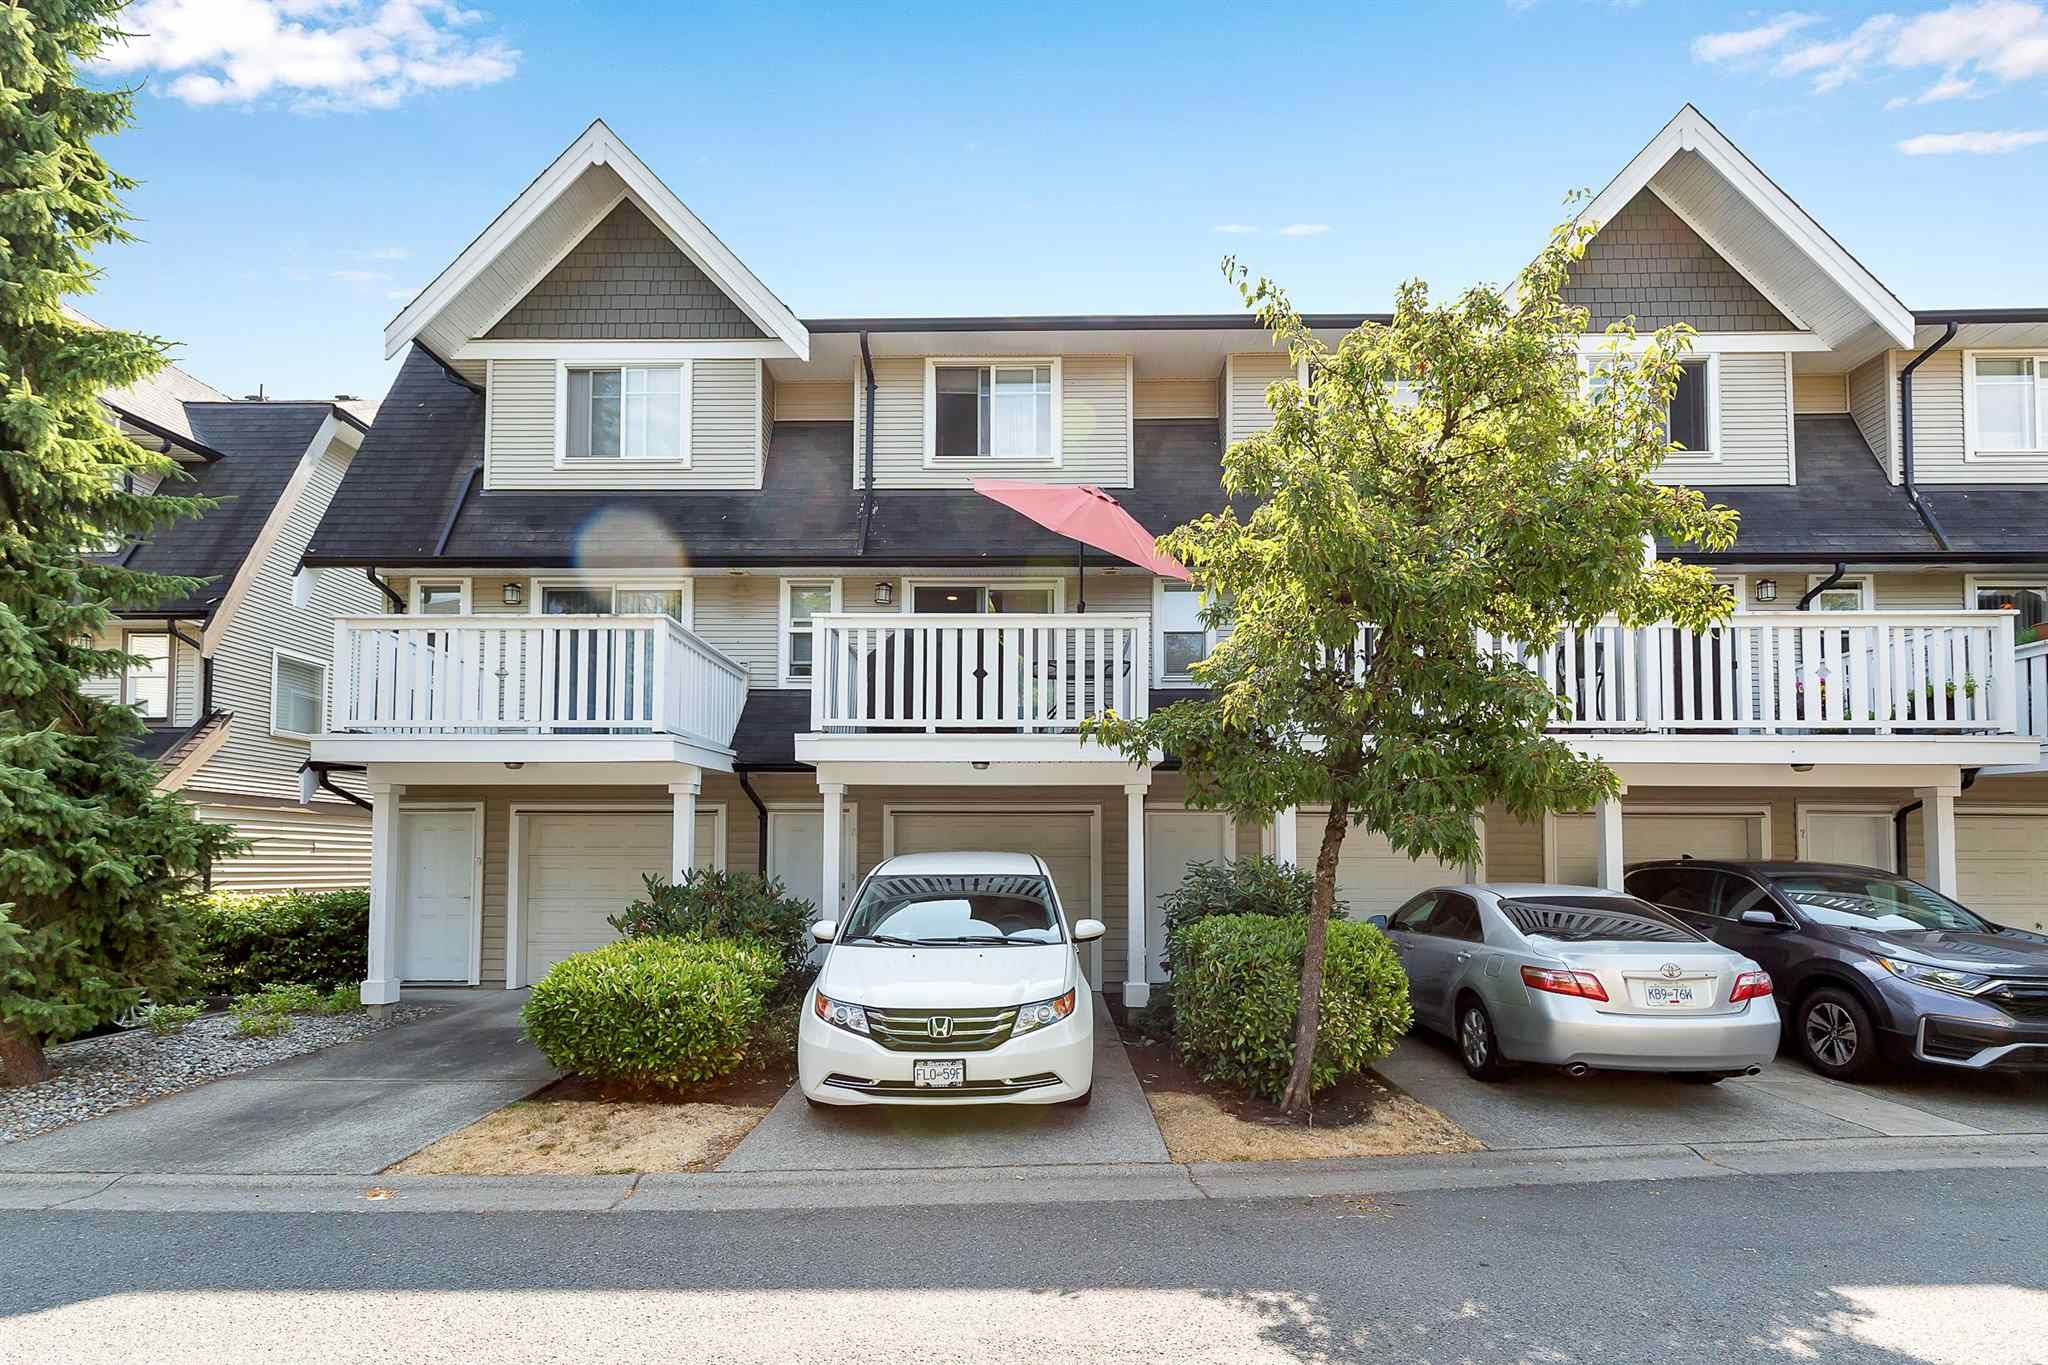 """Photo 29: Photos: 9 15871 85 Avenue in Surrey: Fleetwood Tynehead Townhouse for sale in """"Huckleberry"""" : MLS®# R2606668"""